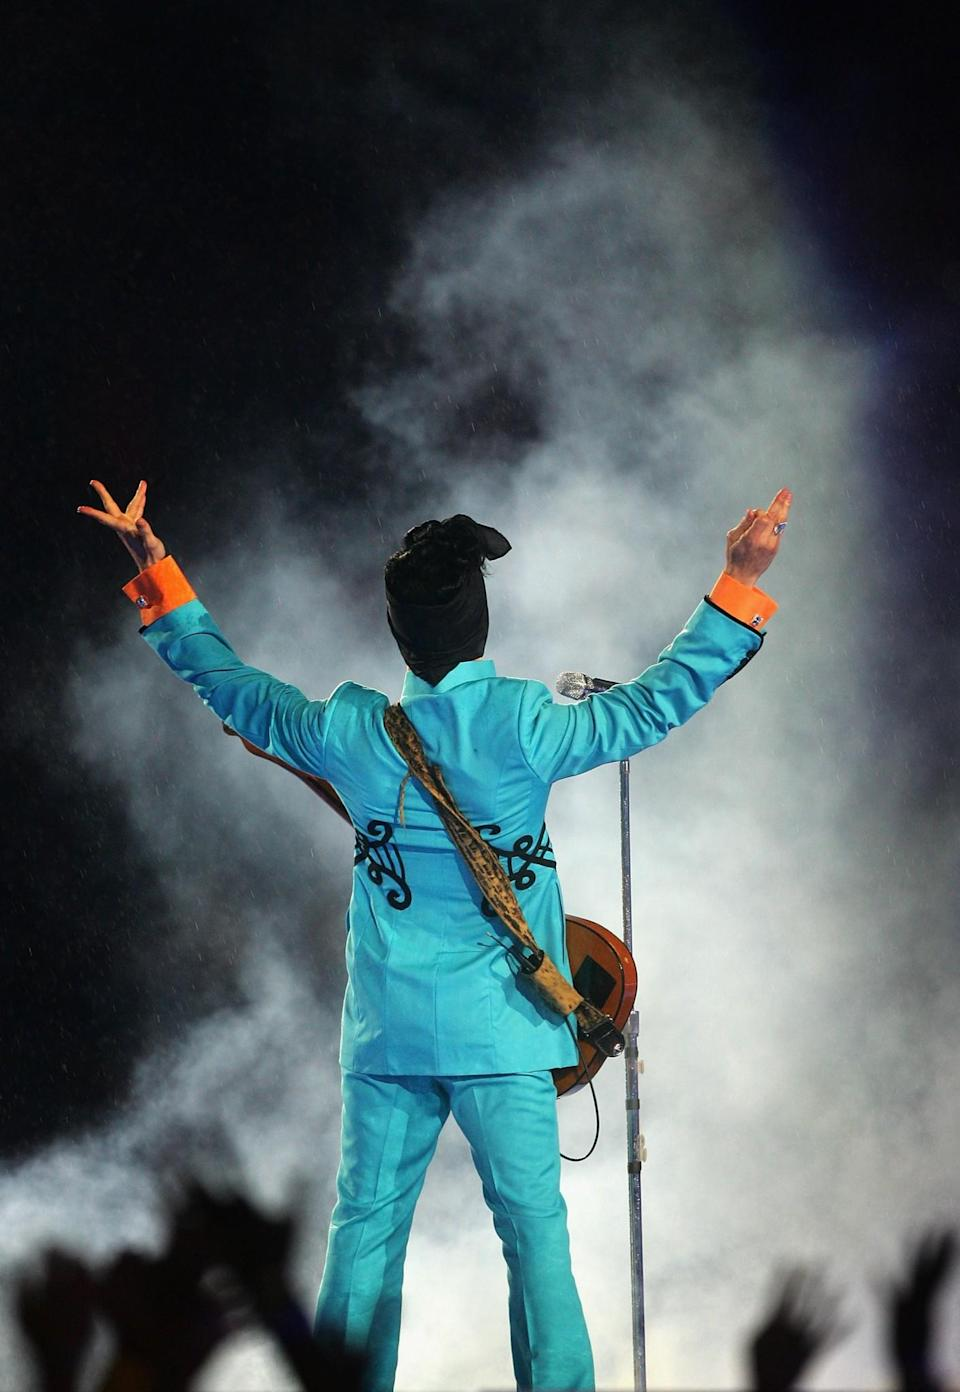 Prince performs during the Pepsi Halftime Show at Super Bowl XLI between the Indianapolis Colts and the Chicago Bears on February 4, 2007, at Dolphin Stadium in Miami. (Photo by Jed Jacobsohn/Getty Images)